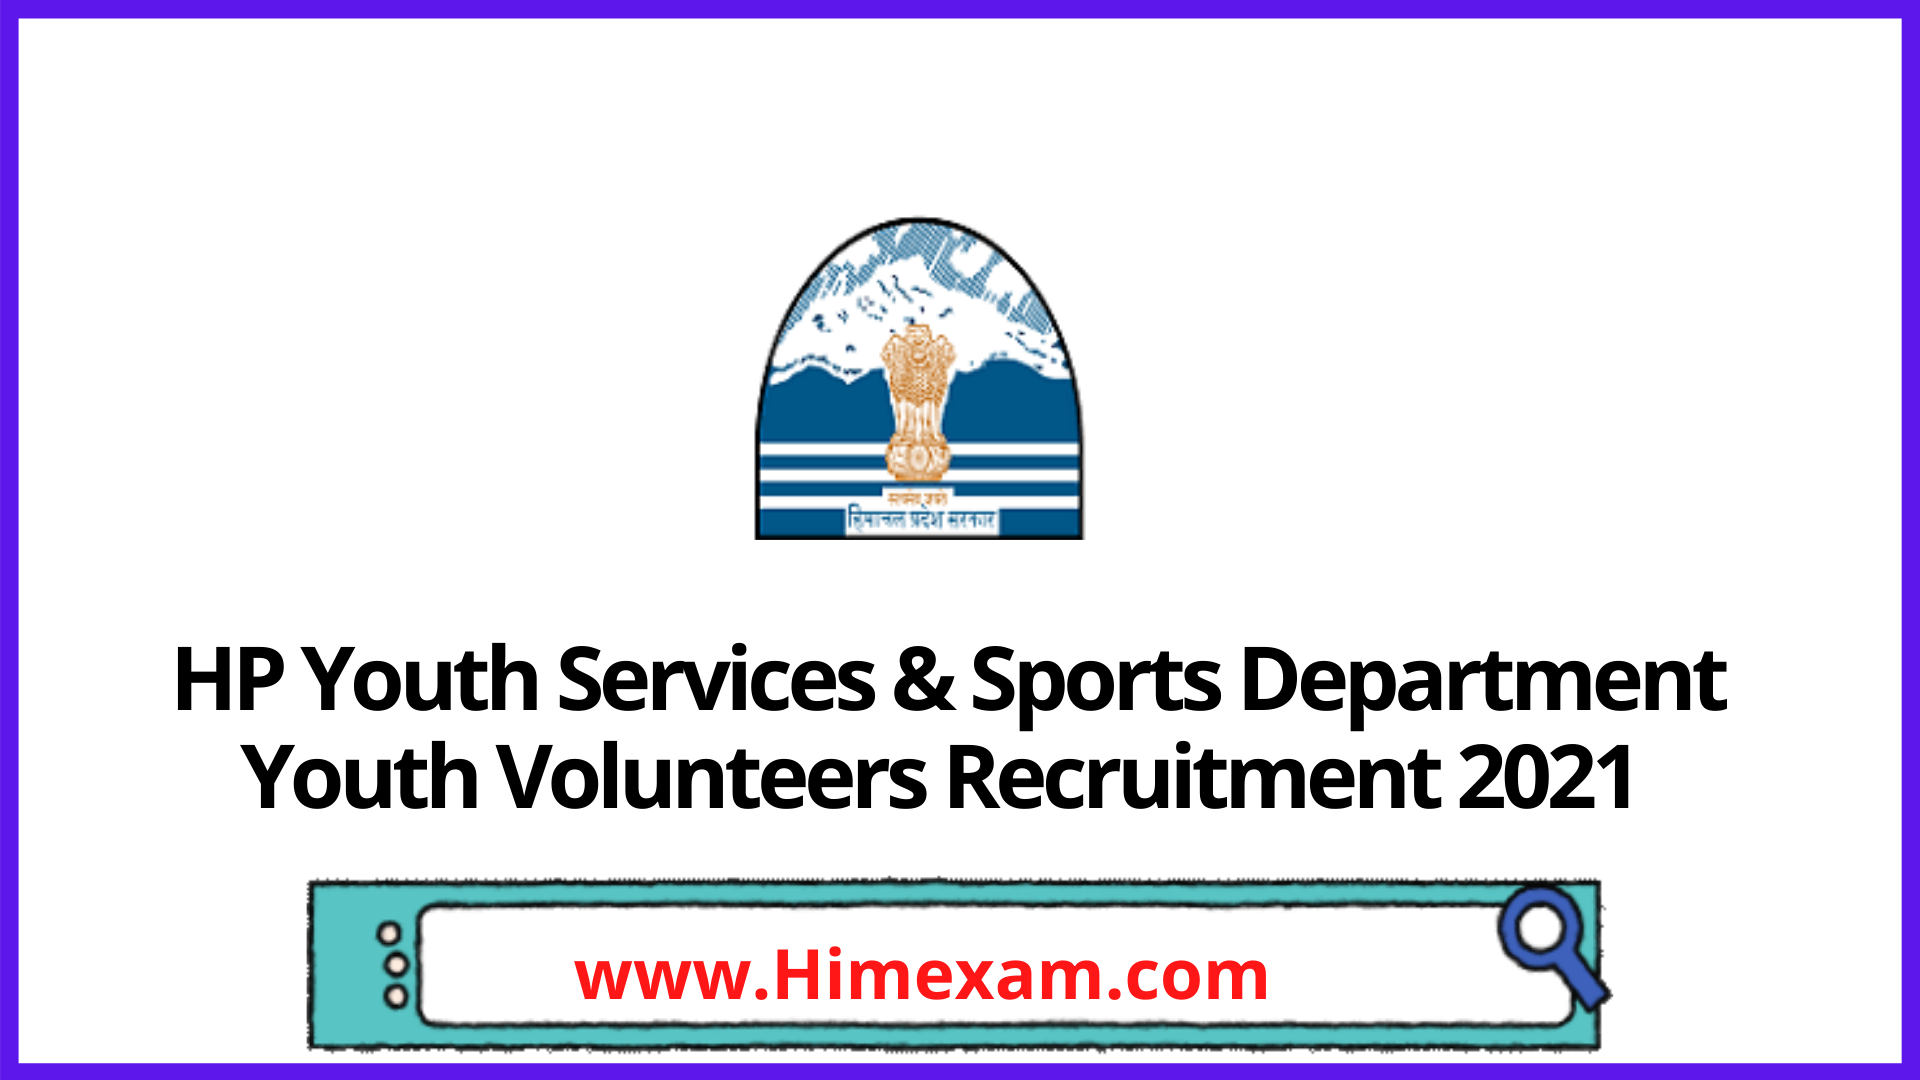 HP Youth Services & Sports Department Youth Volunteers Recruitment 2021